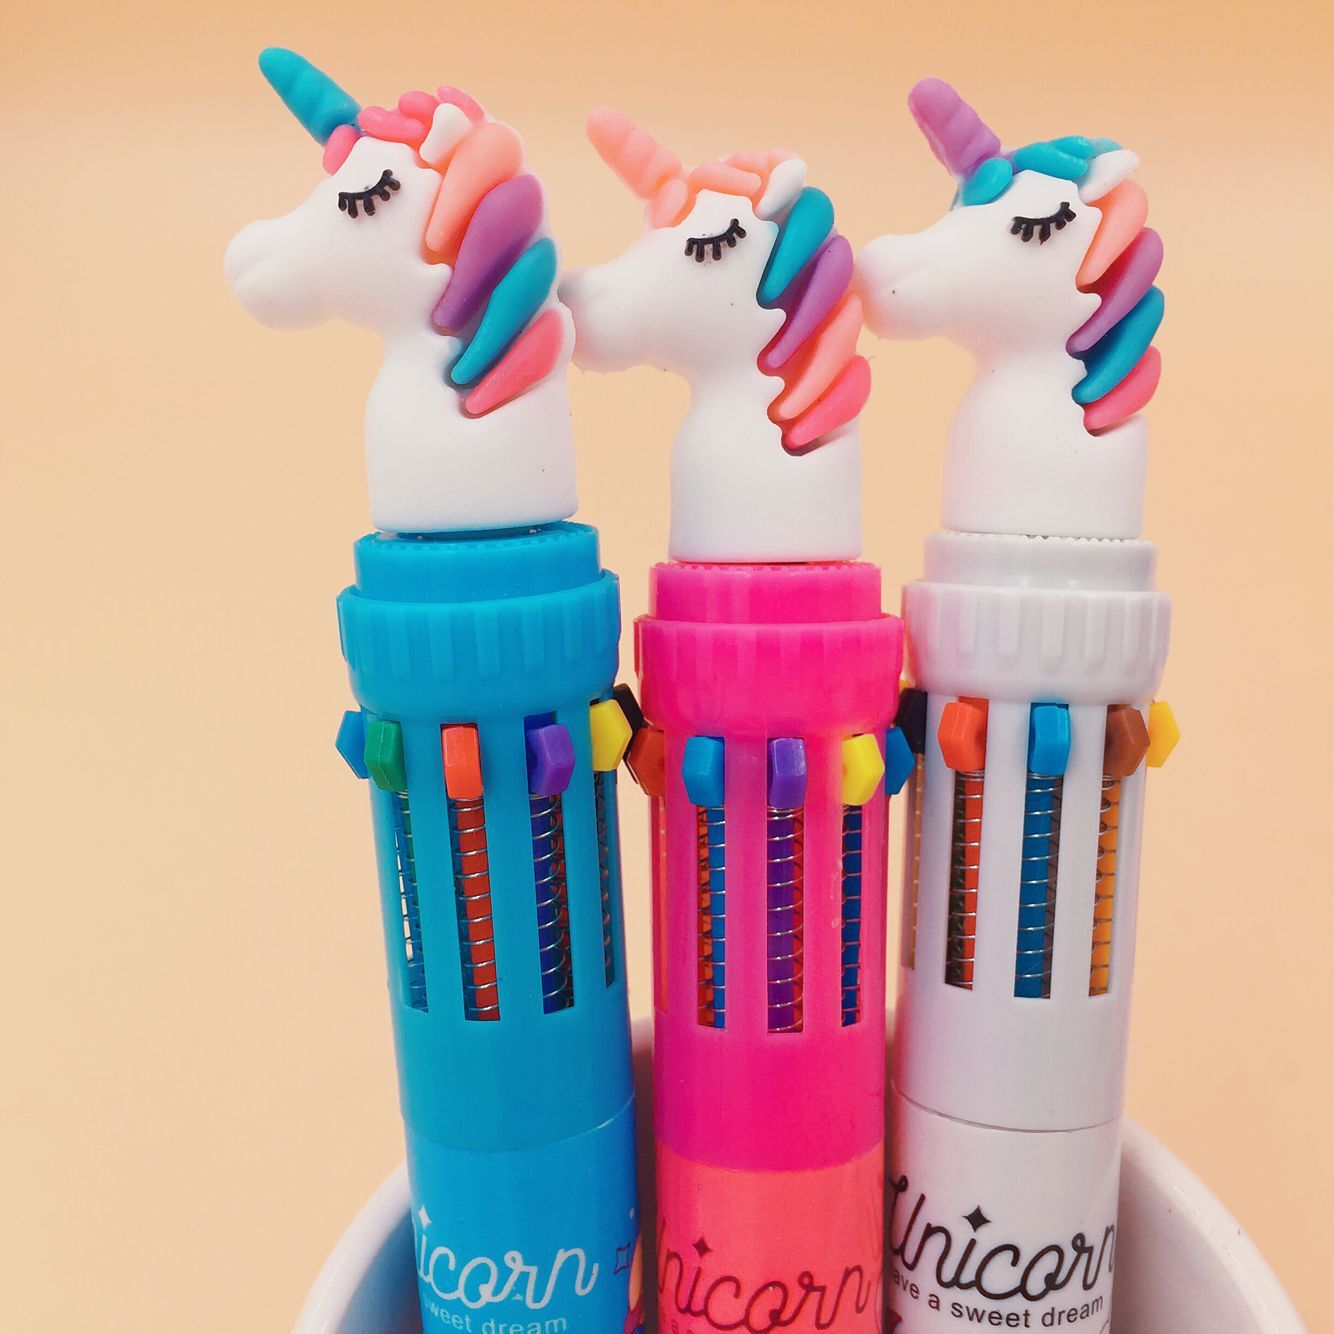 Dream Unicorn 10 Colors Chunky Ballpoint Pen School Office Supply Gift Stationery